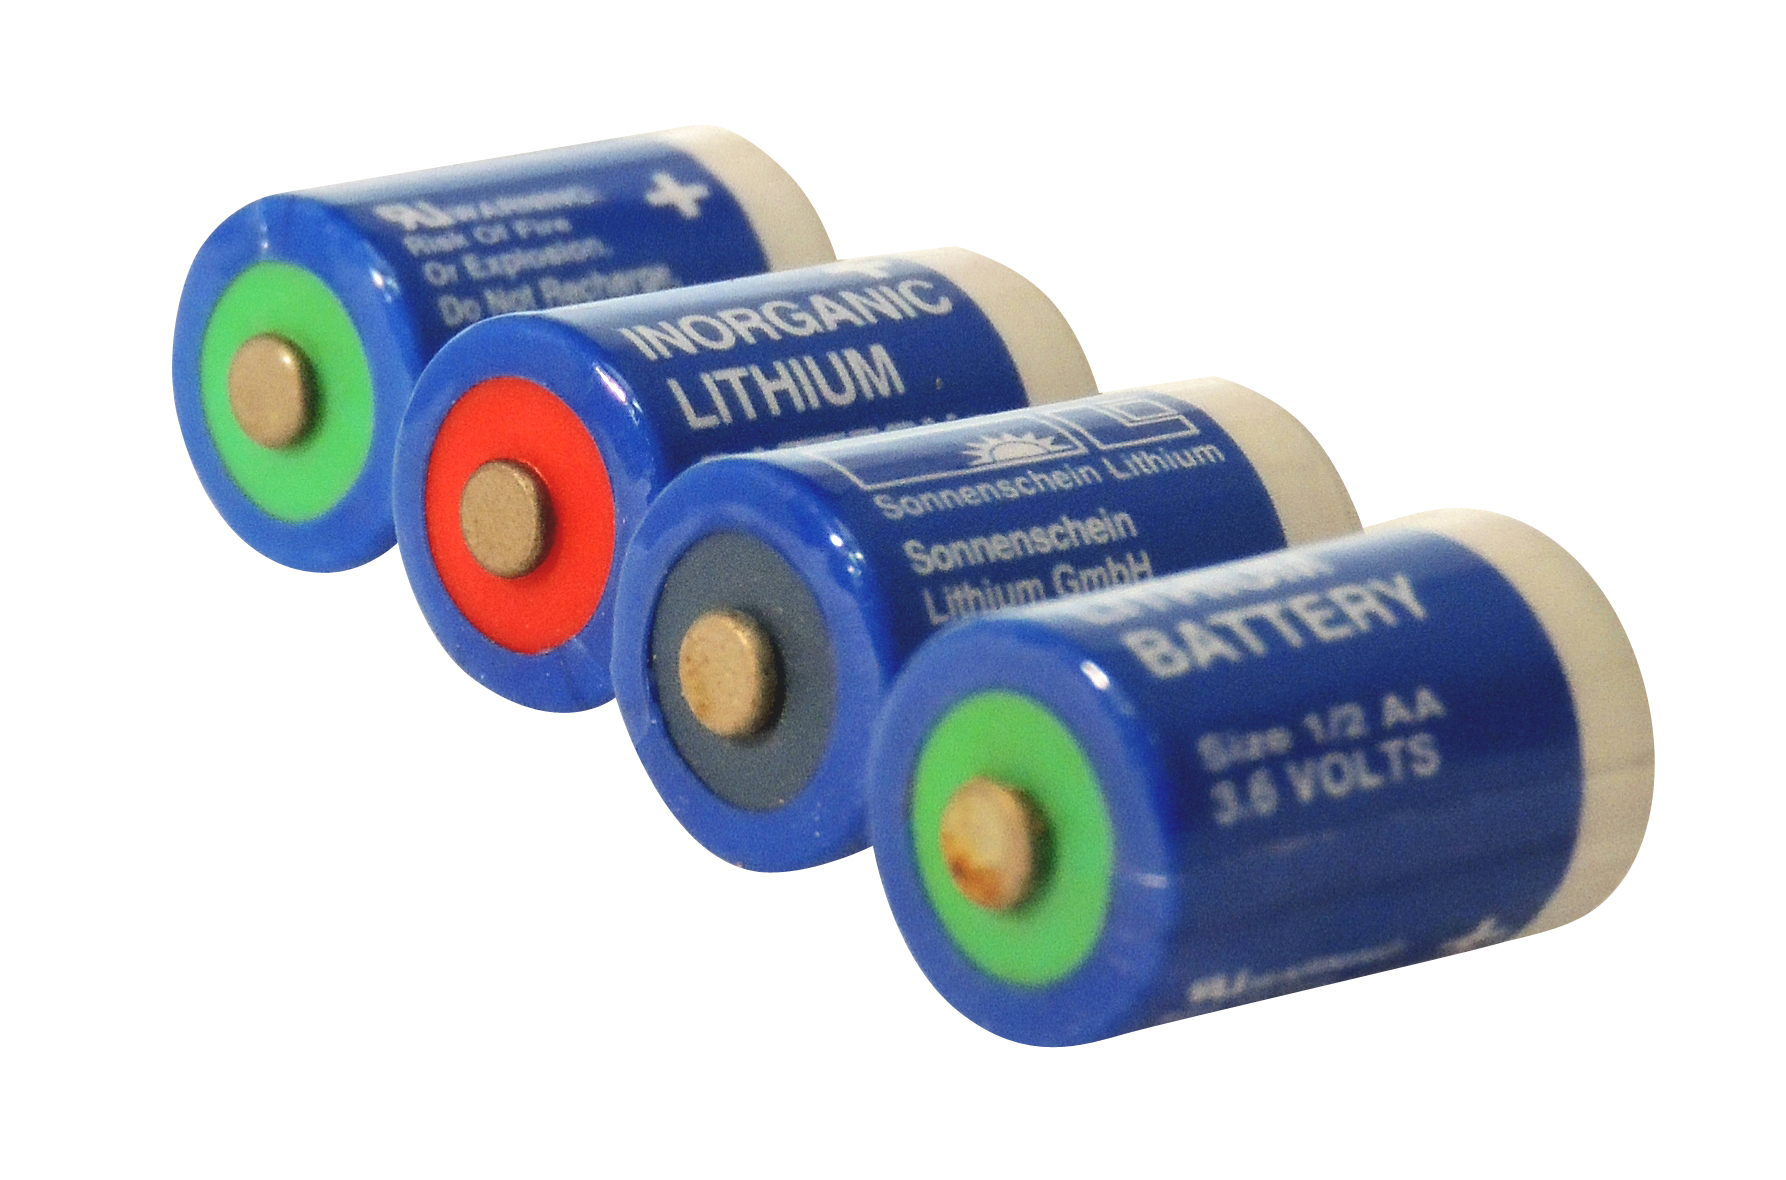 Batteries shrink sleeve label Celtheq